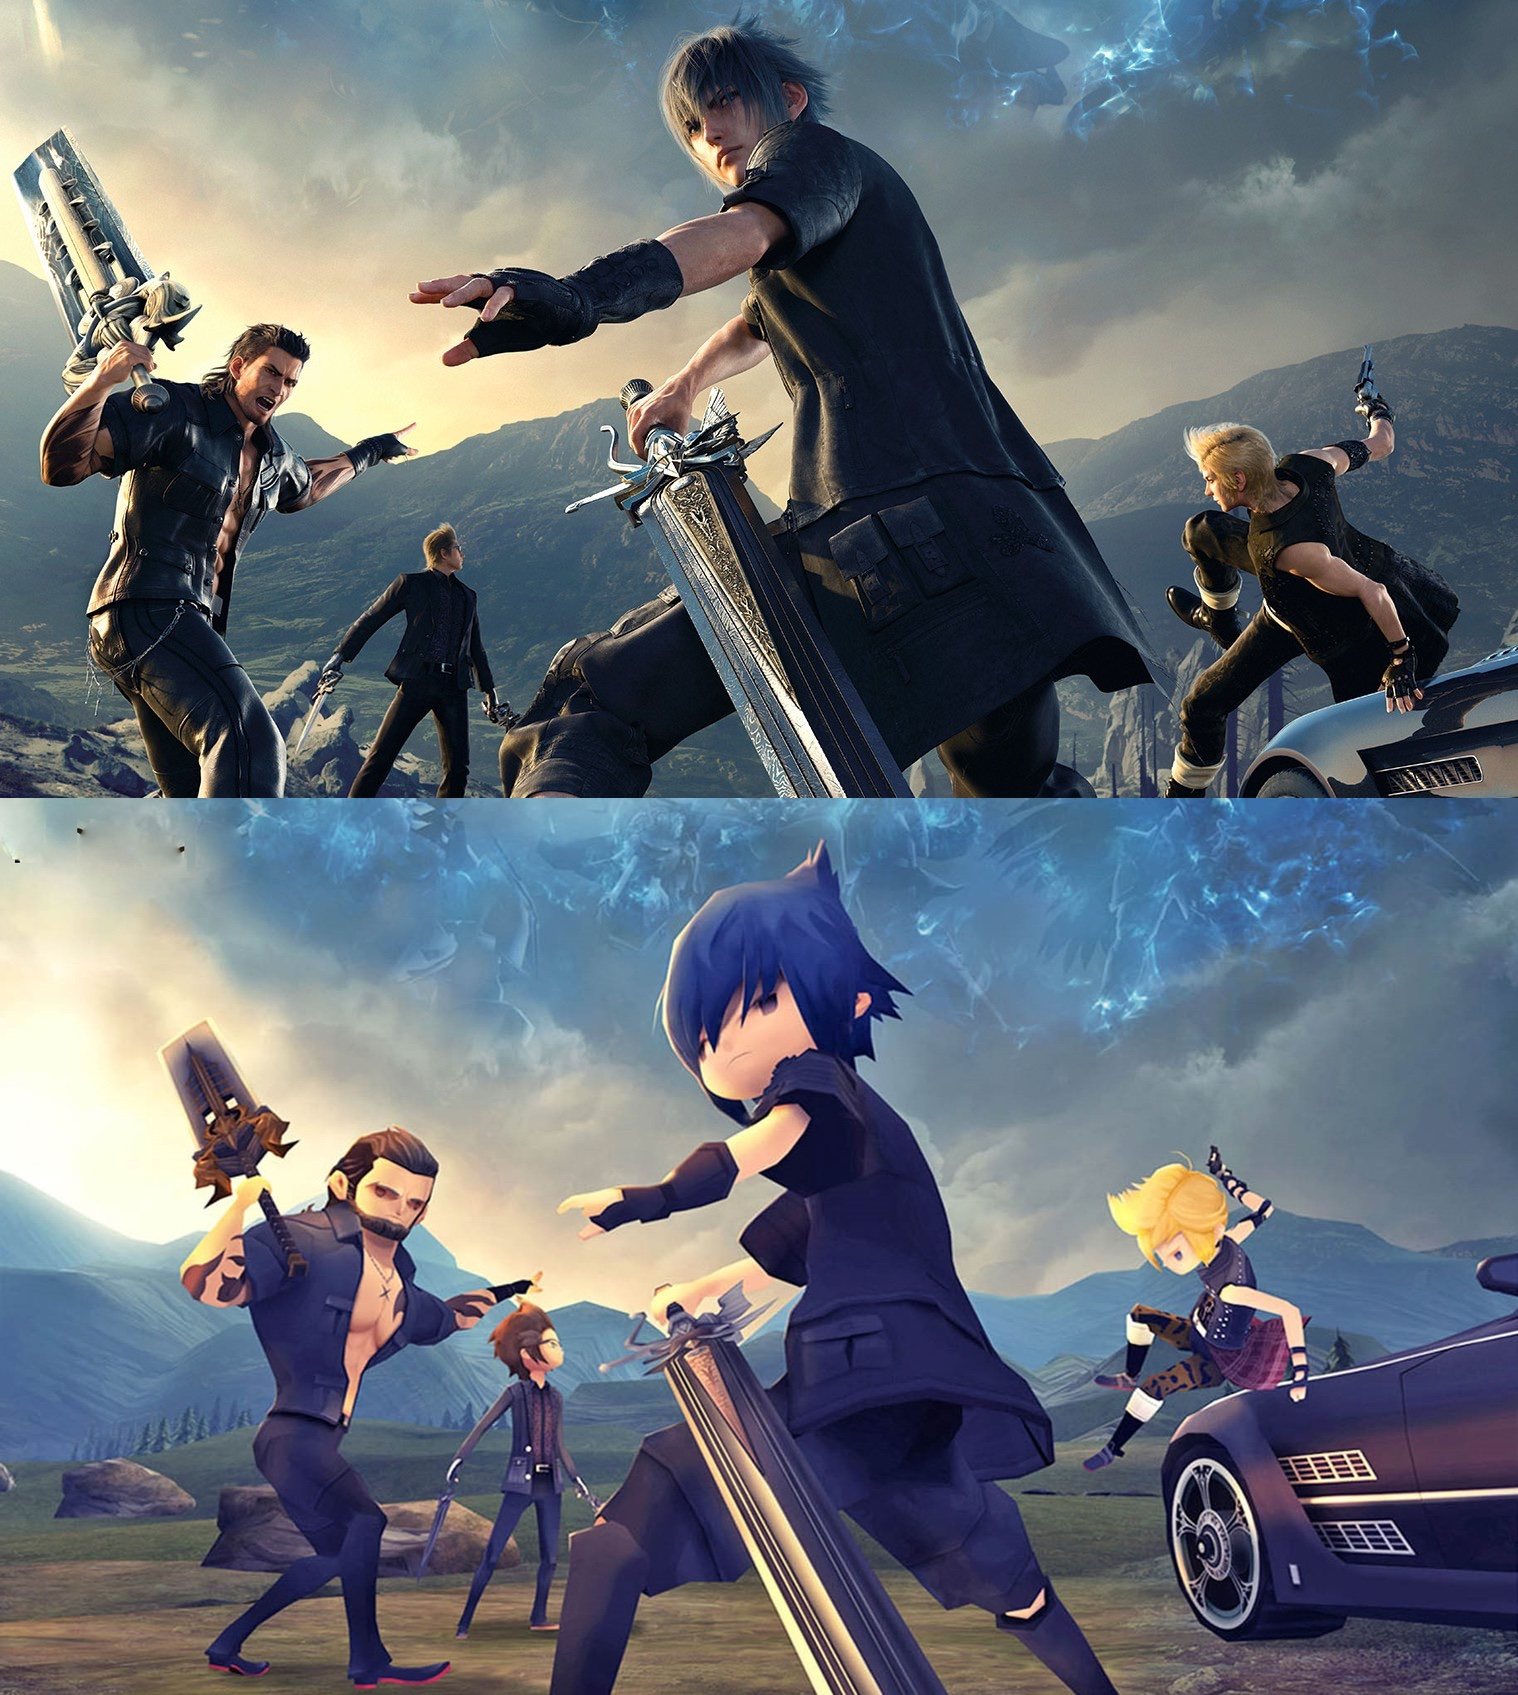 FINALFANTASY XV POCKET EDITION  - 1518738938671 ffxvpocketcompare - Pocket Edition Start The Next Great App Store Trend?